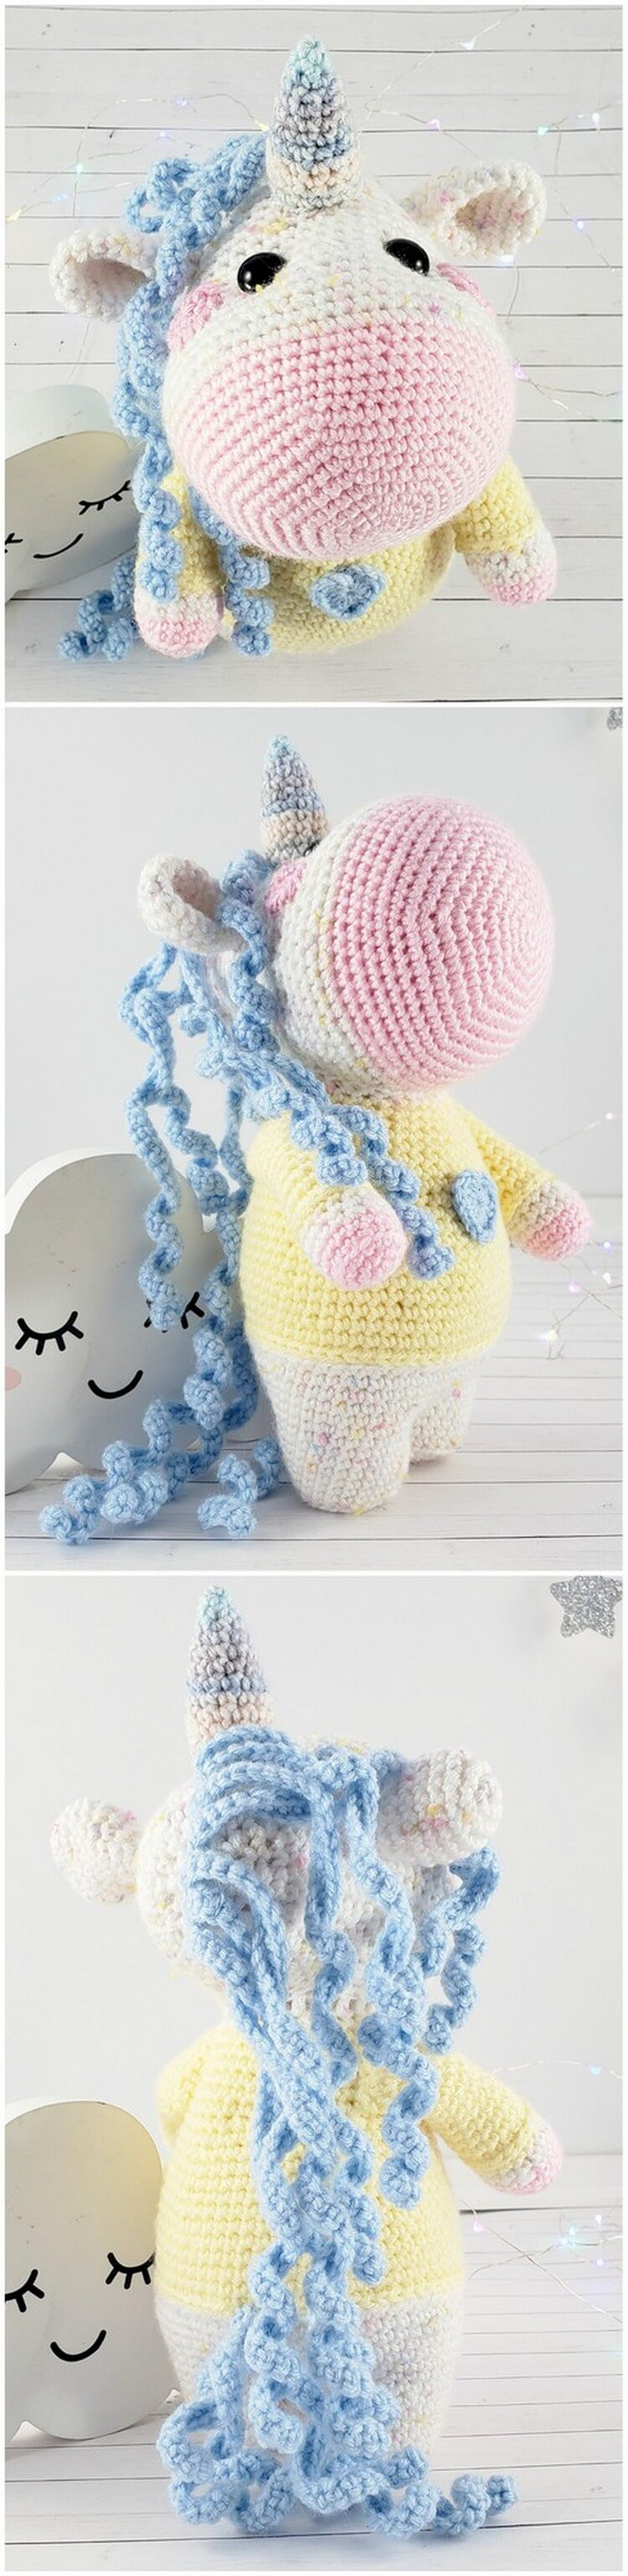 Crochet Unicorn Pattern (25)